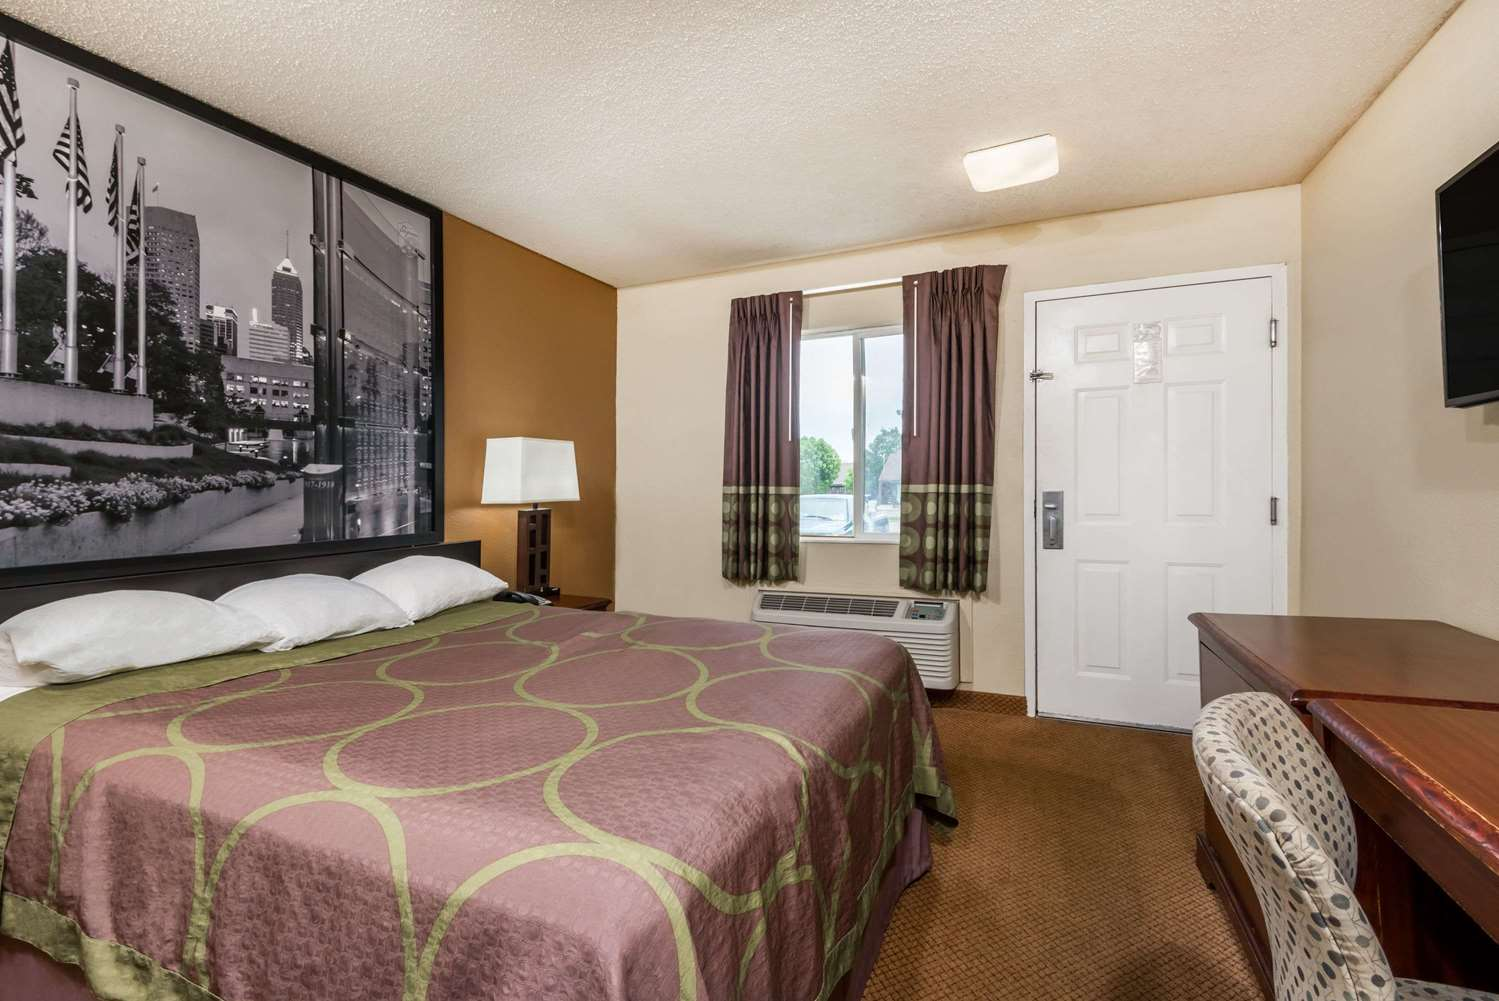 Super 8 Hotel Northeast Castleton Indianapolis In See